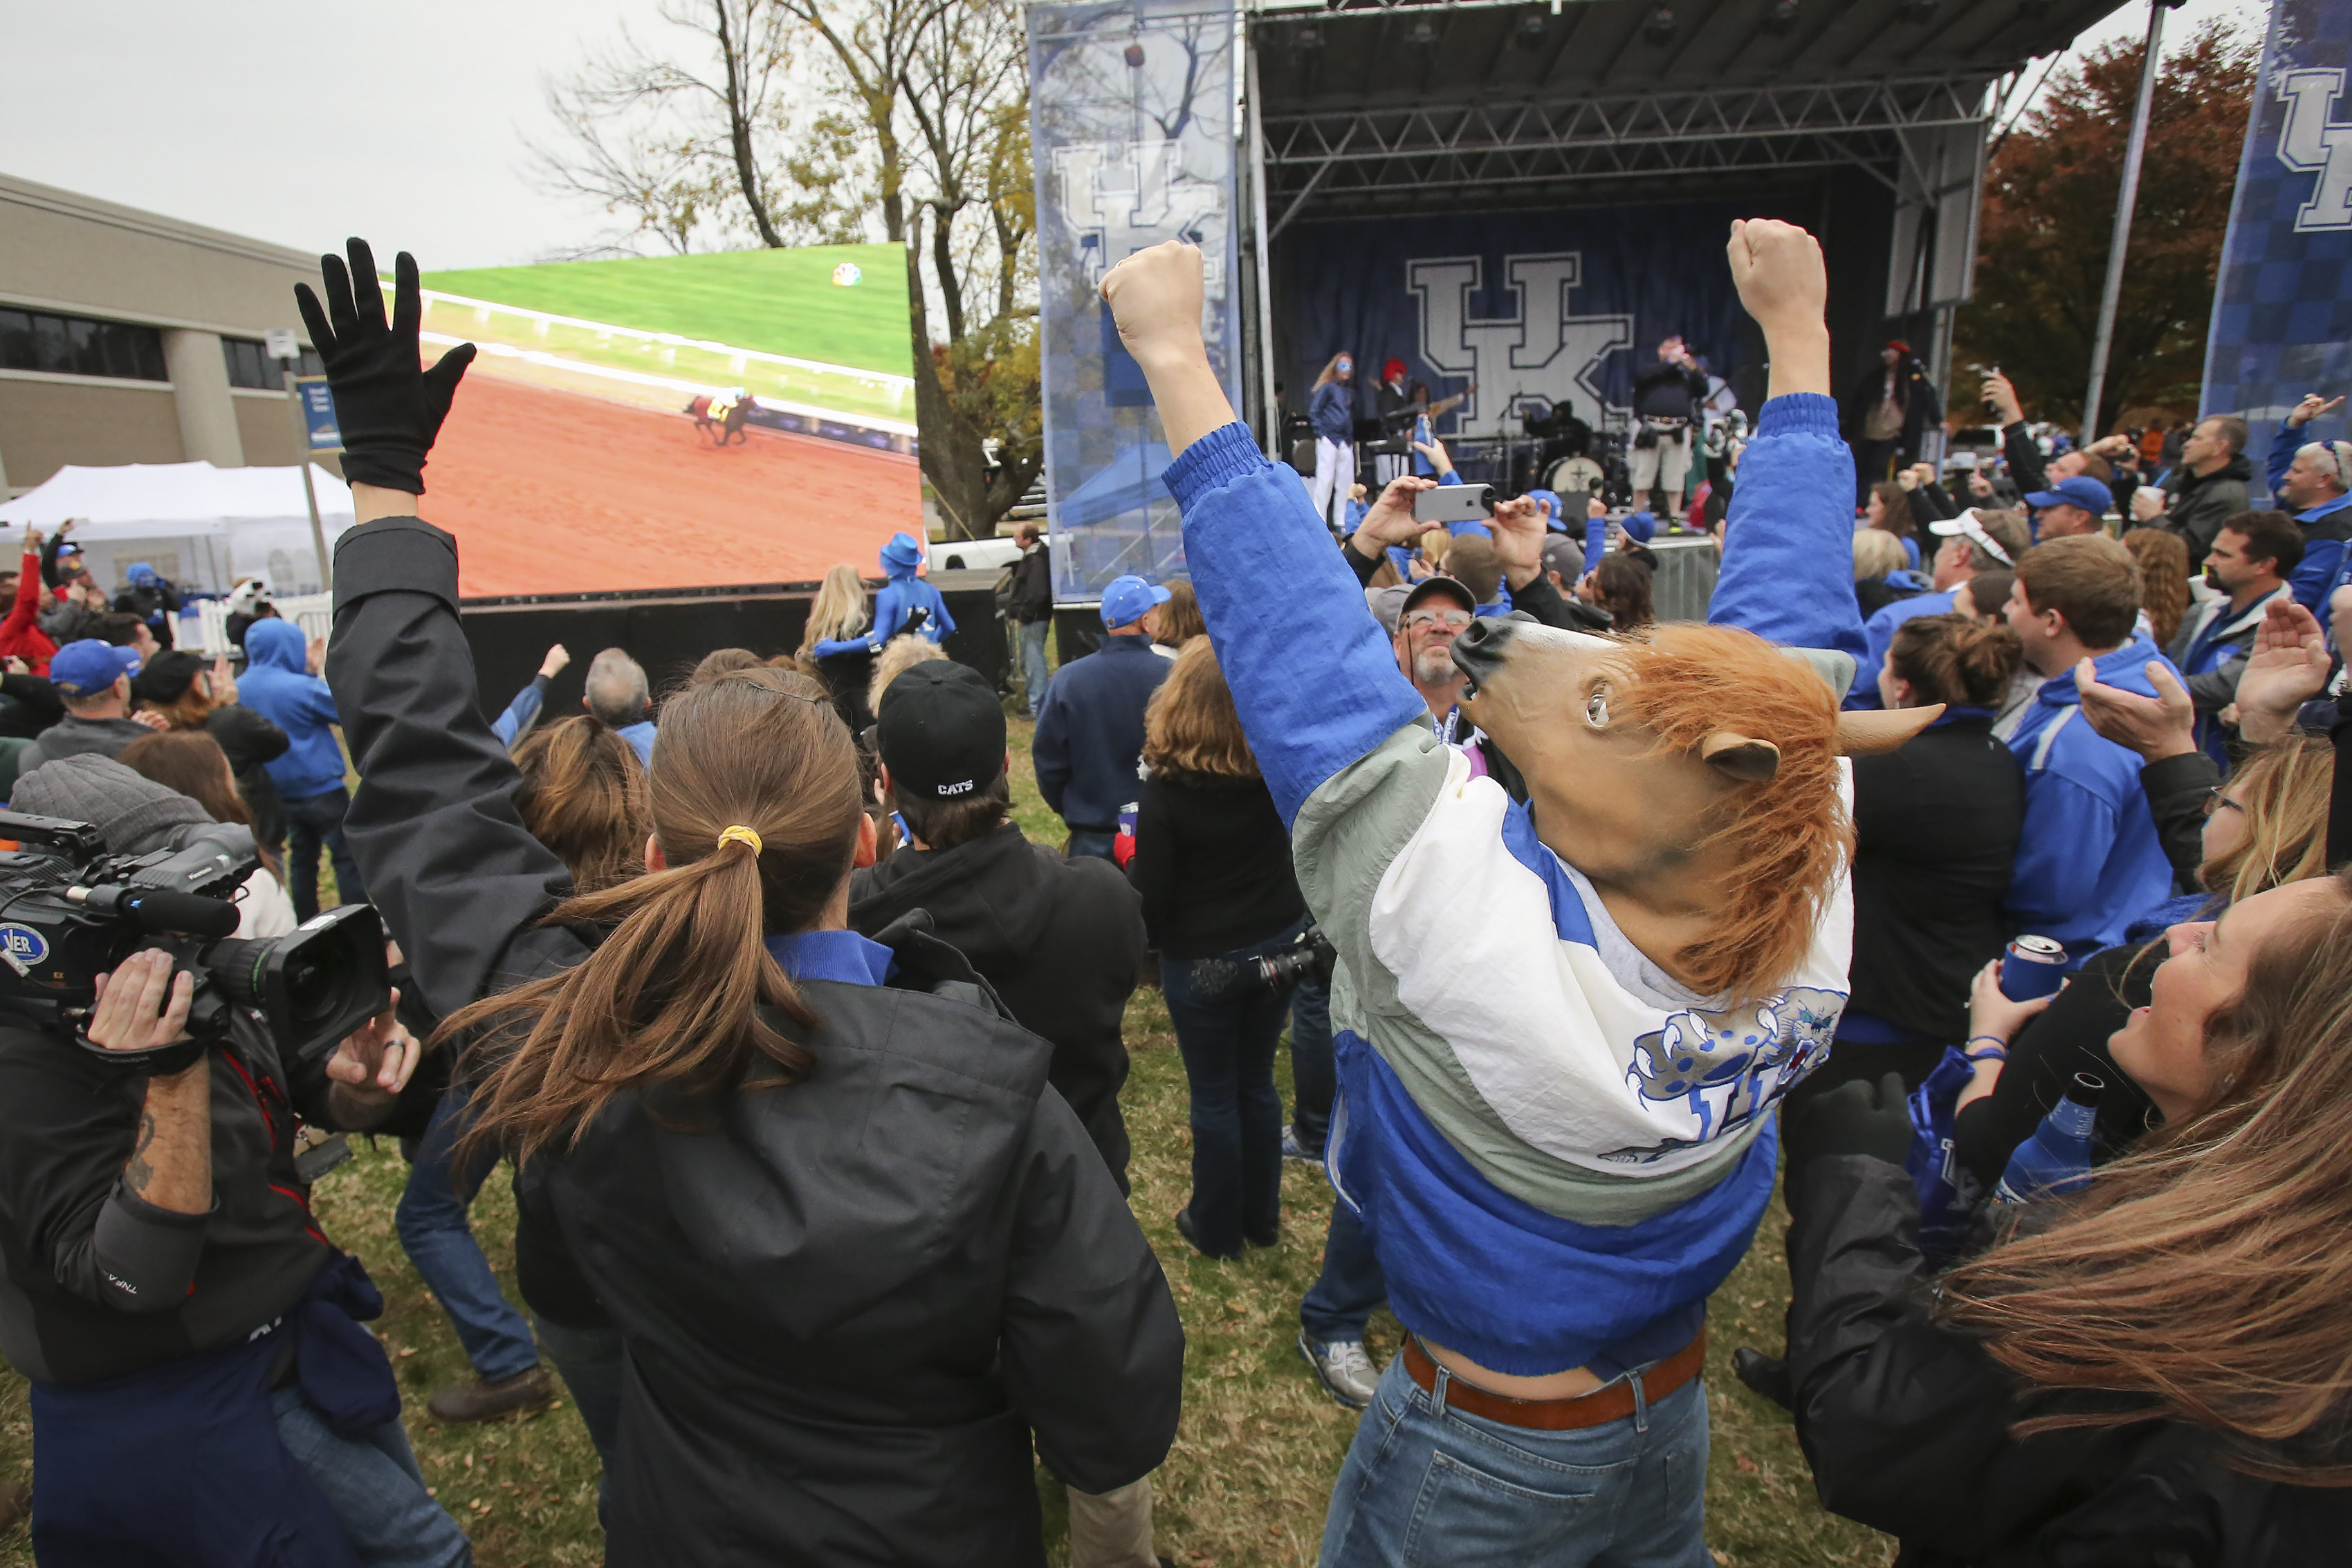 Wearing a horse head mask, Chase Milner and his wife Rebecca cheer as they watch American Pharoah win the Breeders' Cup Classic in the parking lot of Commonwealth Stadium before Kentucky played Tennessee in an NCAA college football game Saturday, Oct. 31,